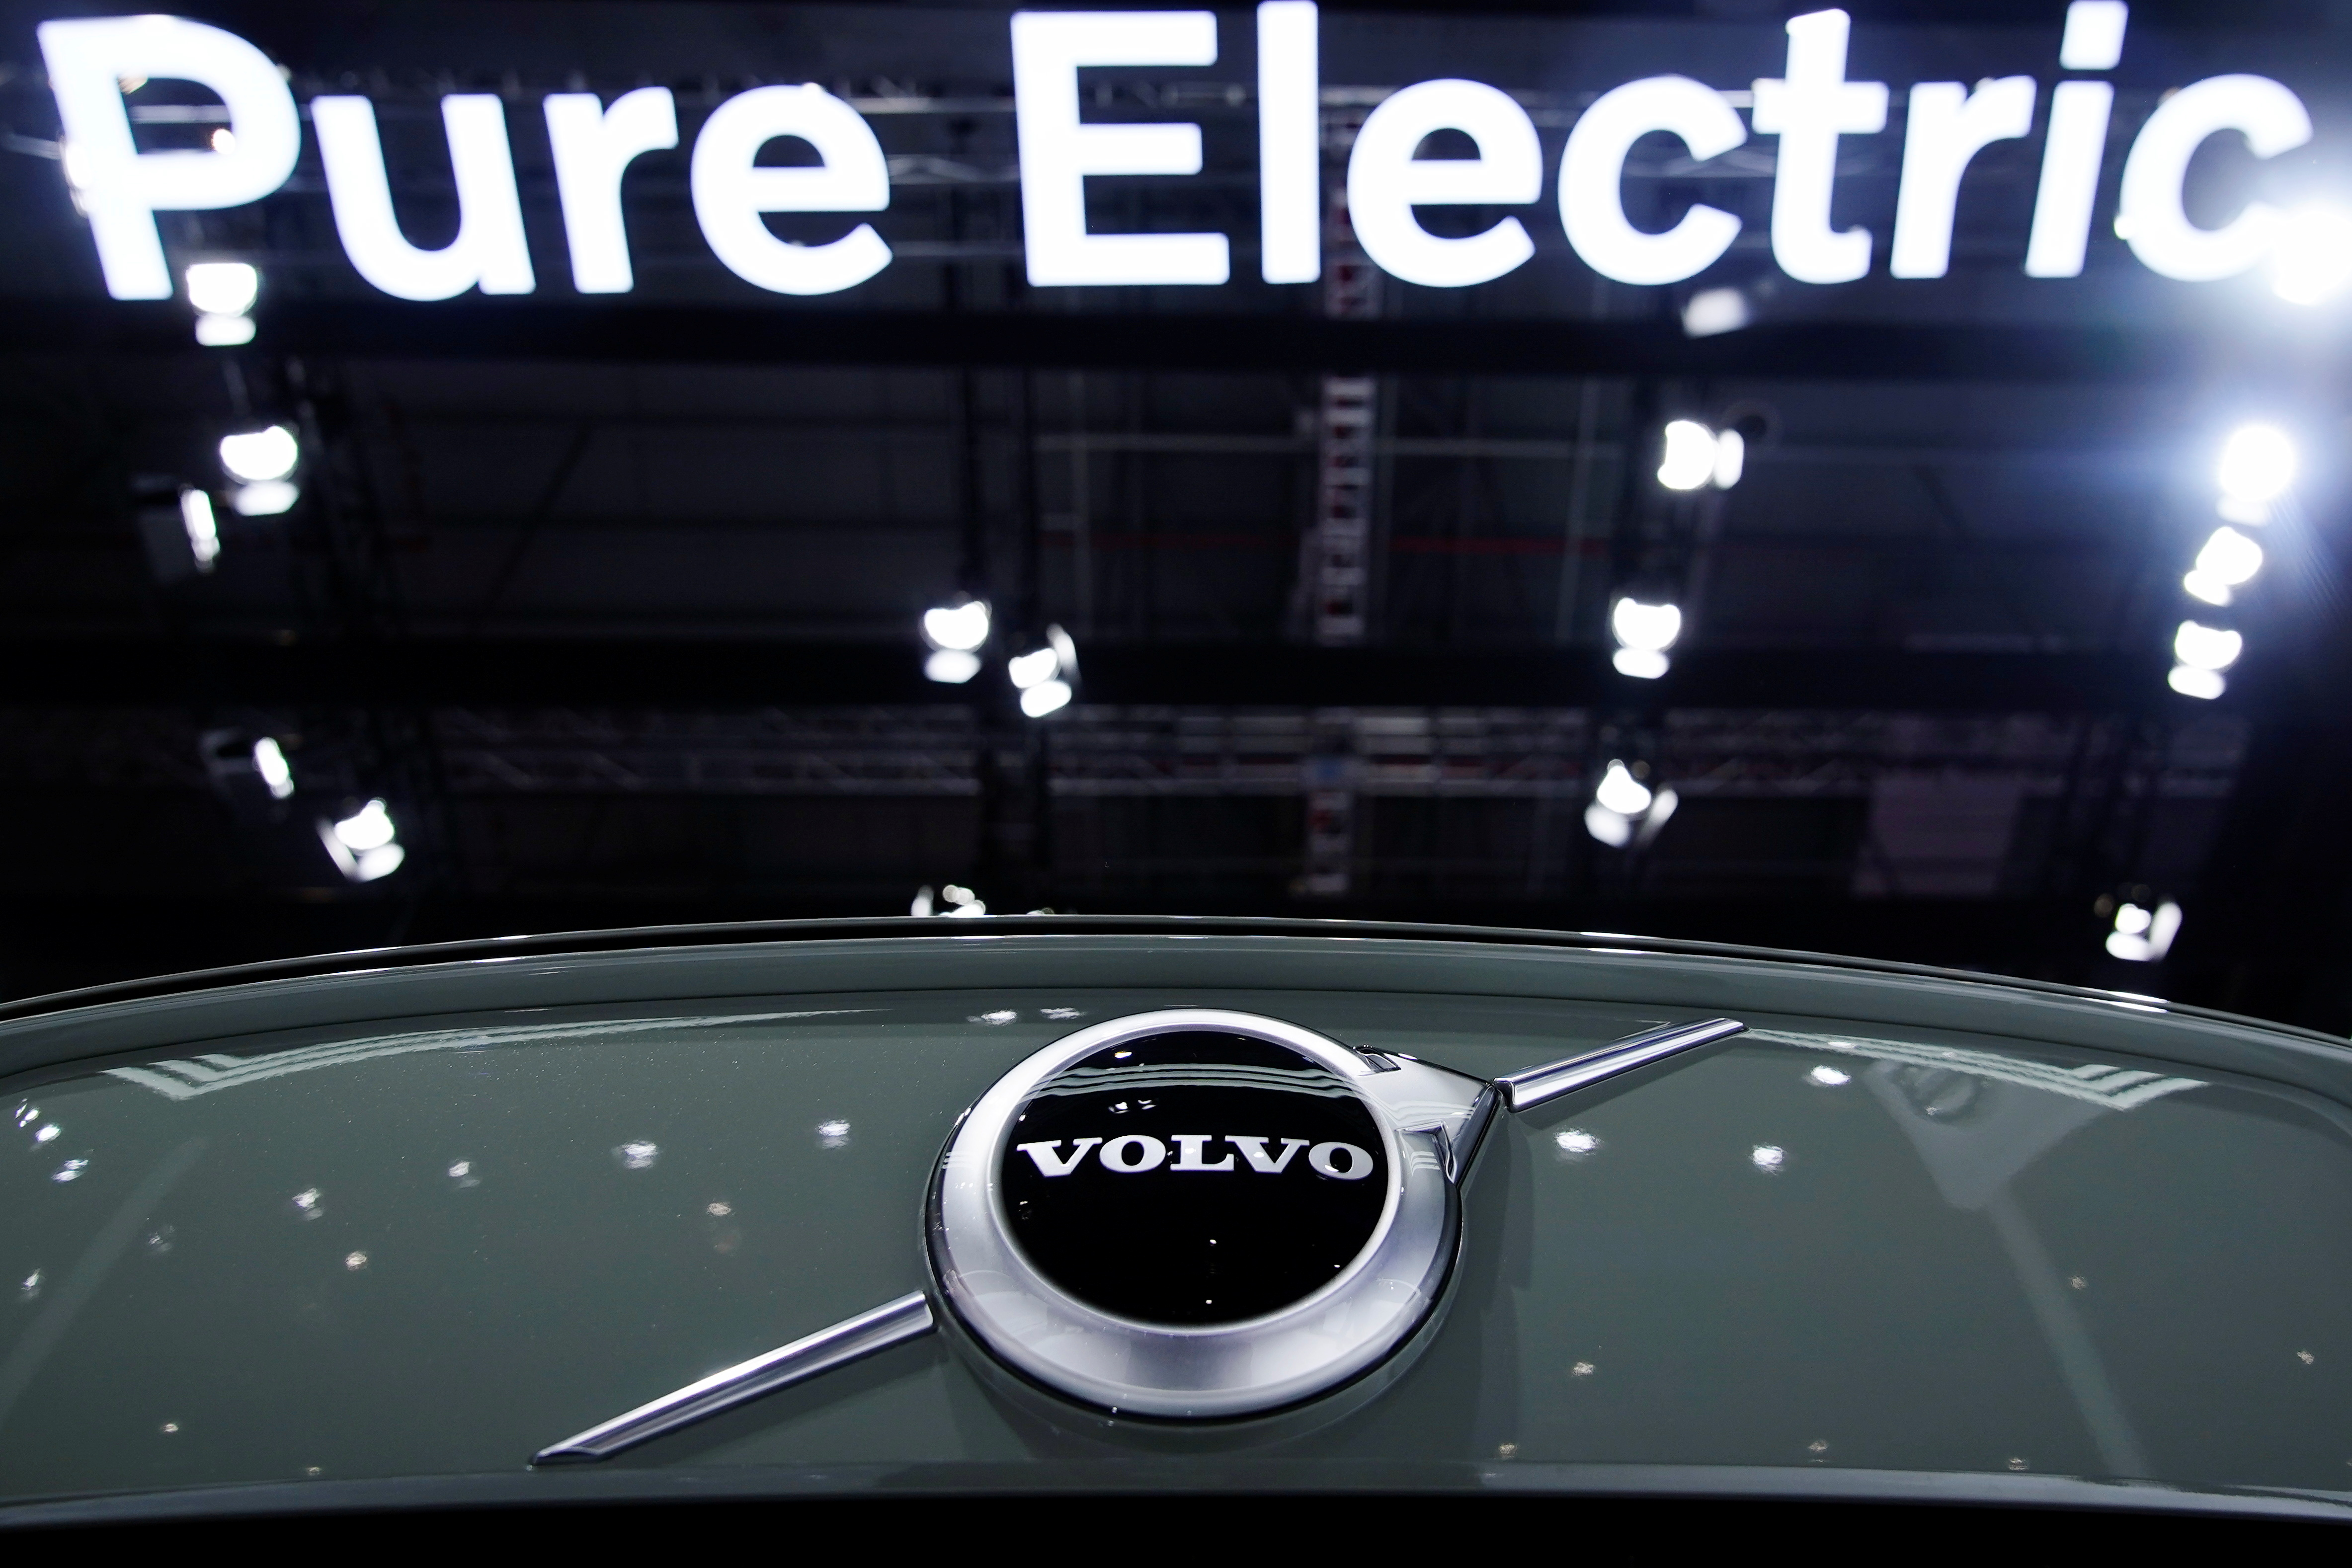 A Pure Electric sign is seen above a Volvo vehicle displayed during a media day for the Auto Shanghai show in Shanghai, China April 20, 2021. REUTERS/Aly Song/Files